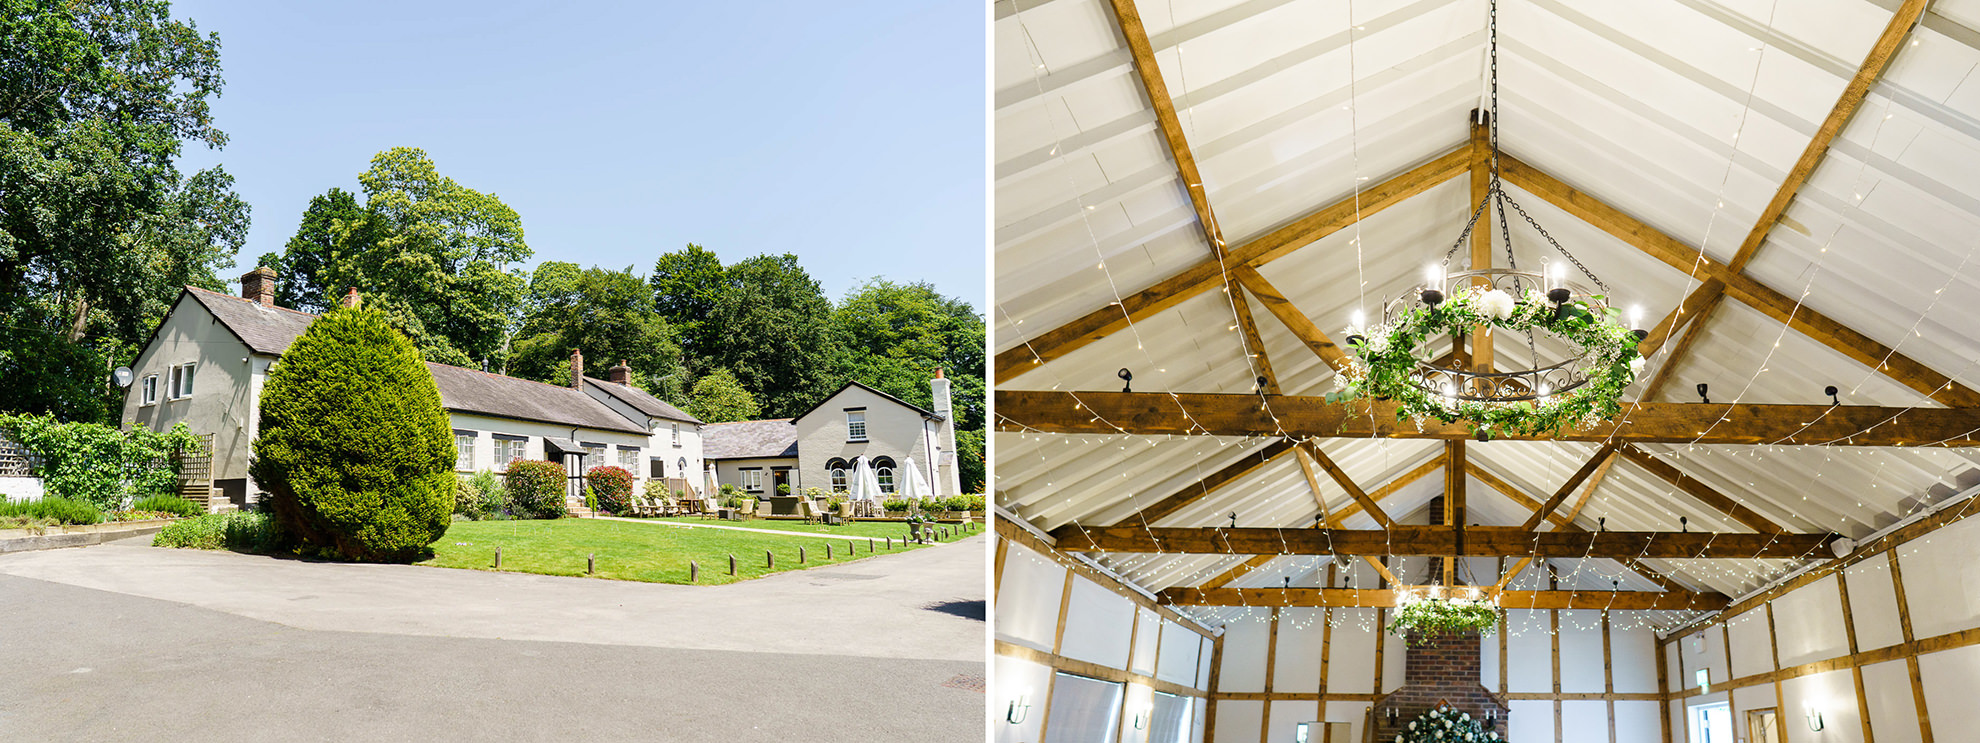 dyptich of otuside burley manor barn and inside the barn set up for wedding